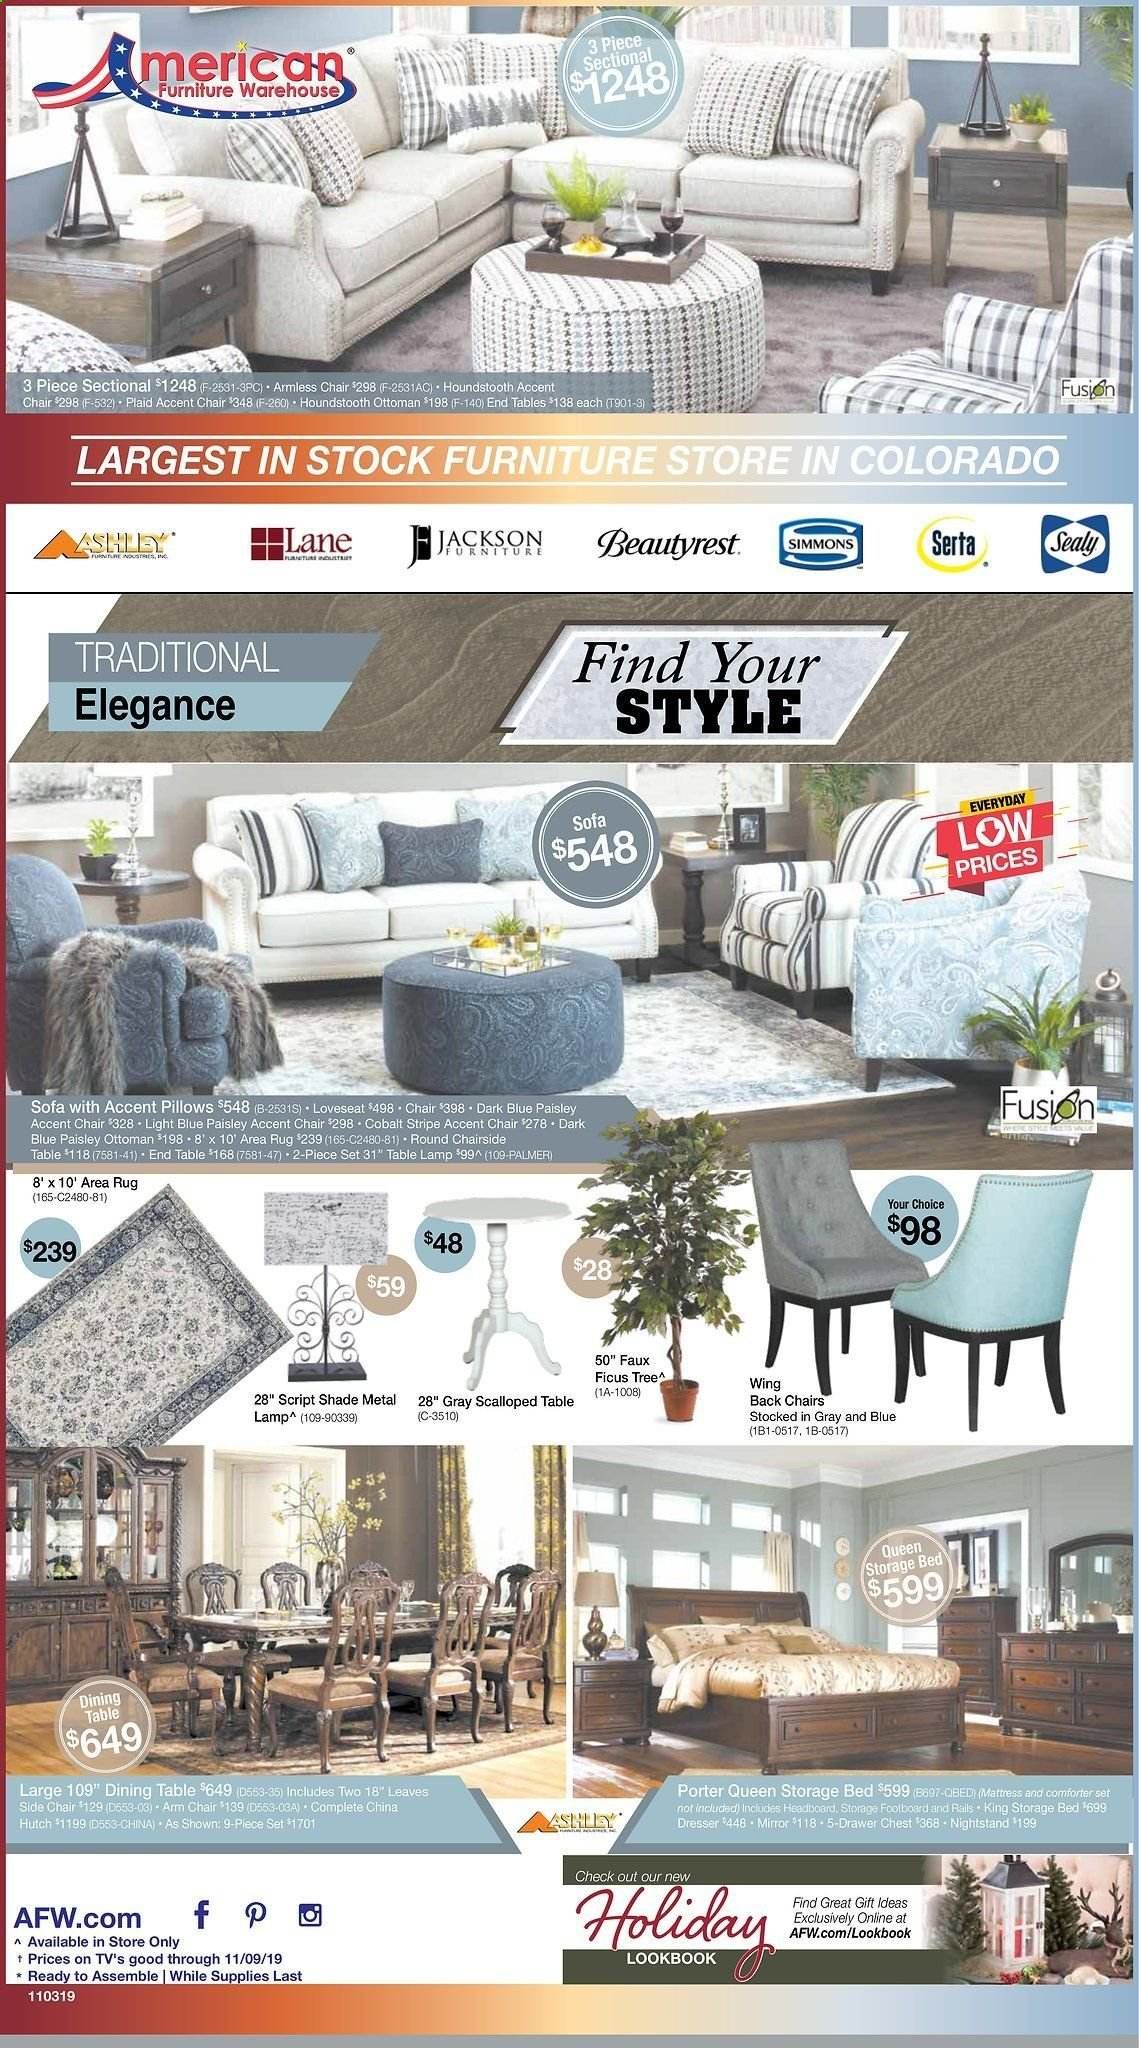 American Furniture Warehouse Flyer  - 11.03.2019 - 11.09.2019. Page 1.